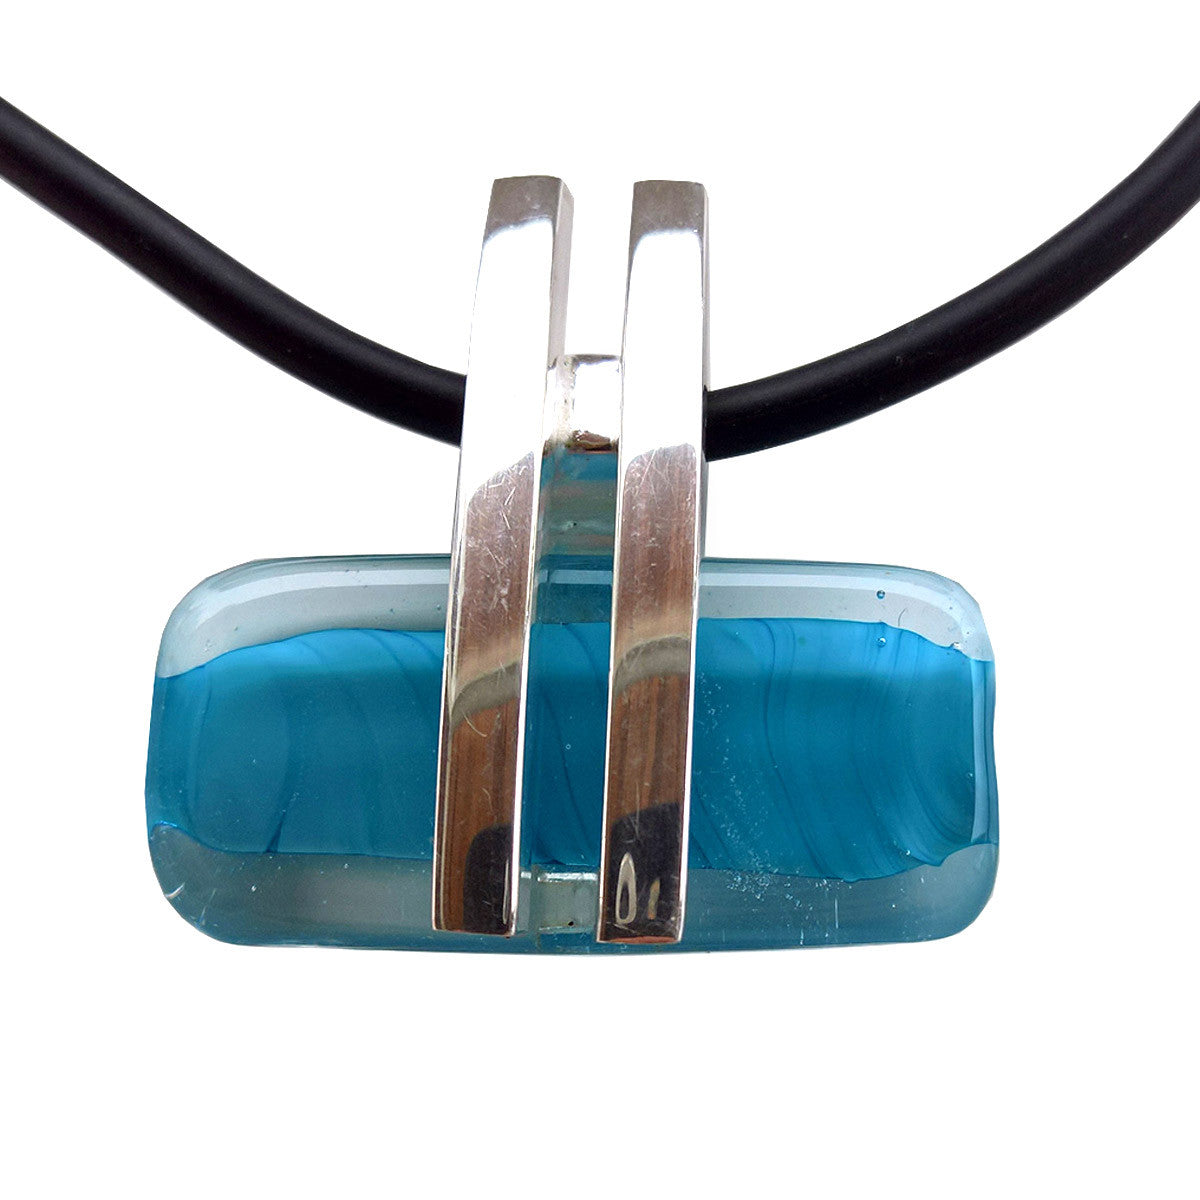 La Foglia D'Oro: Oval Murano Glass + Silver Necklace - Sky Blue